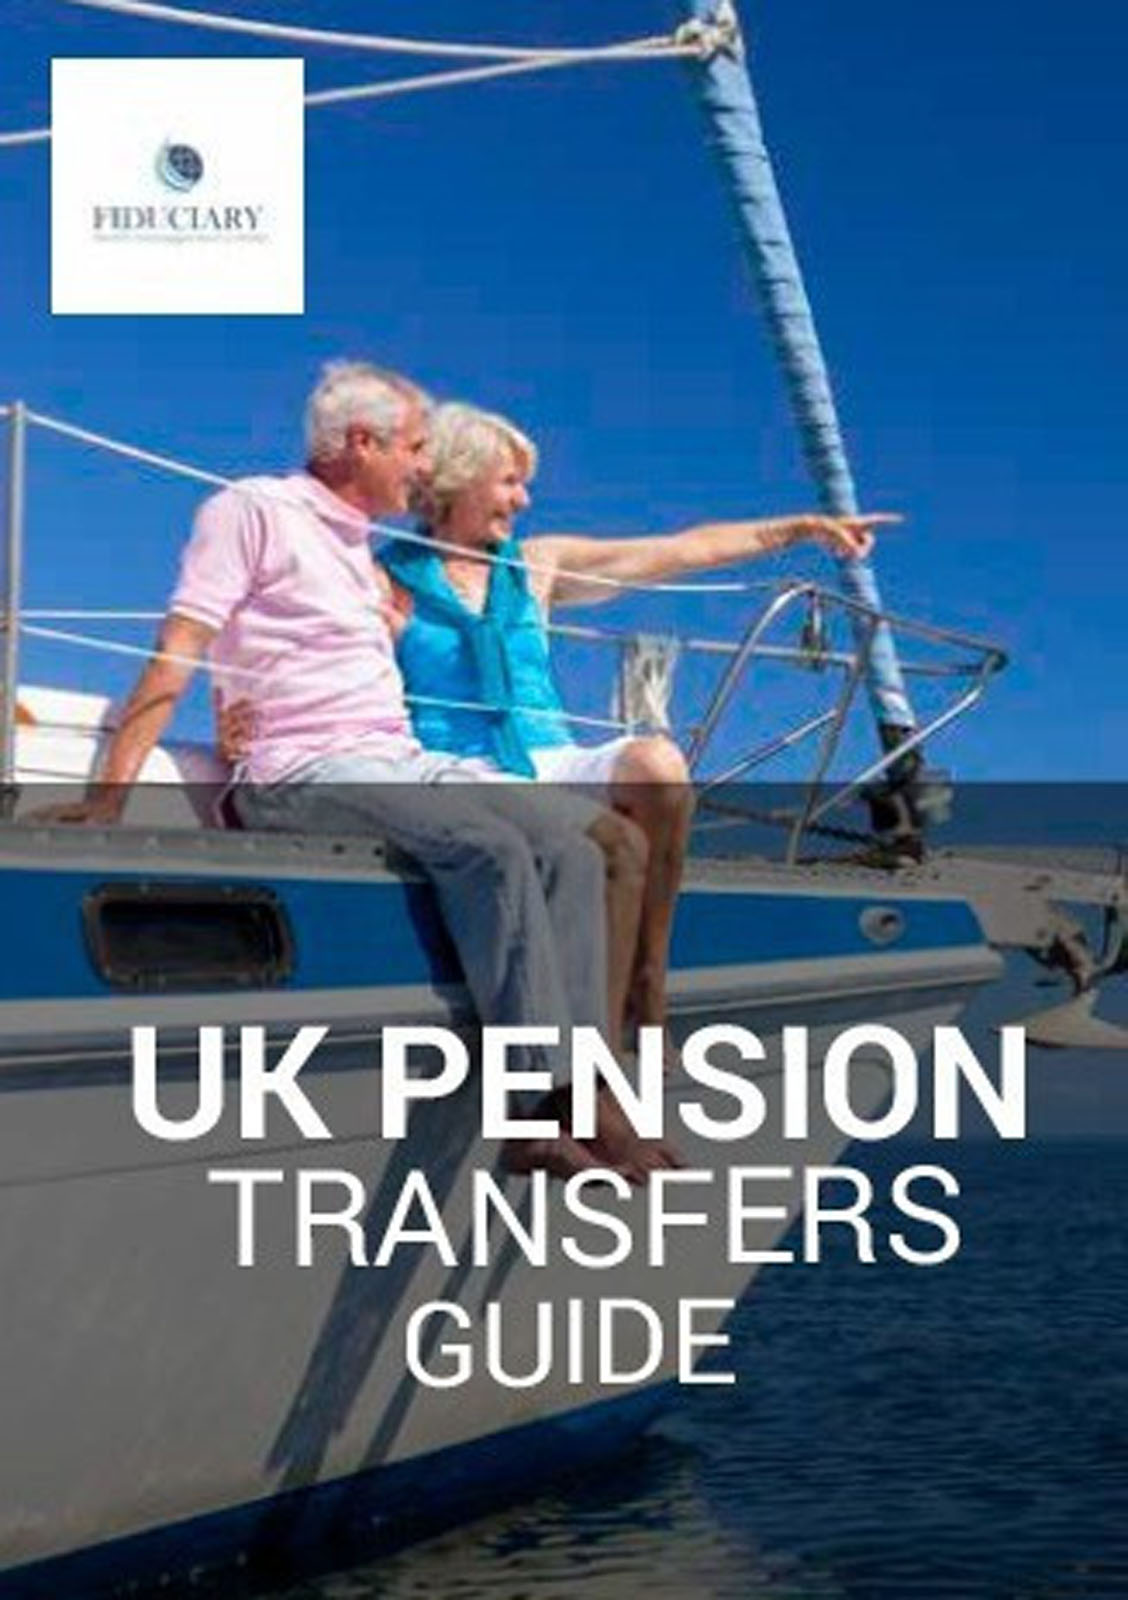 UK Pension Transfers Guide Image